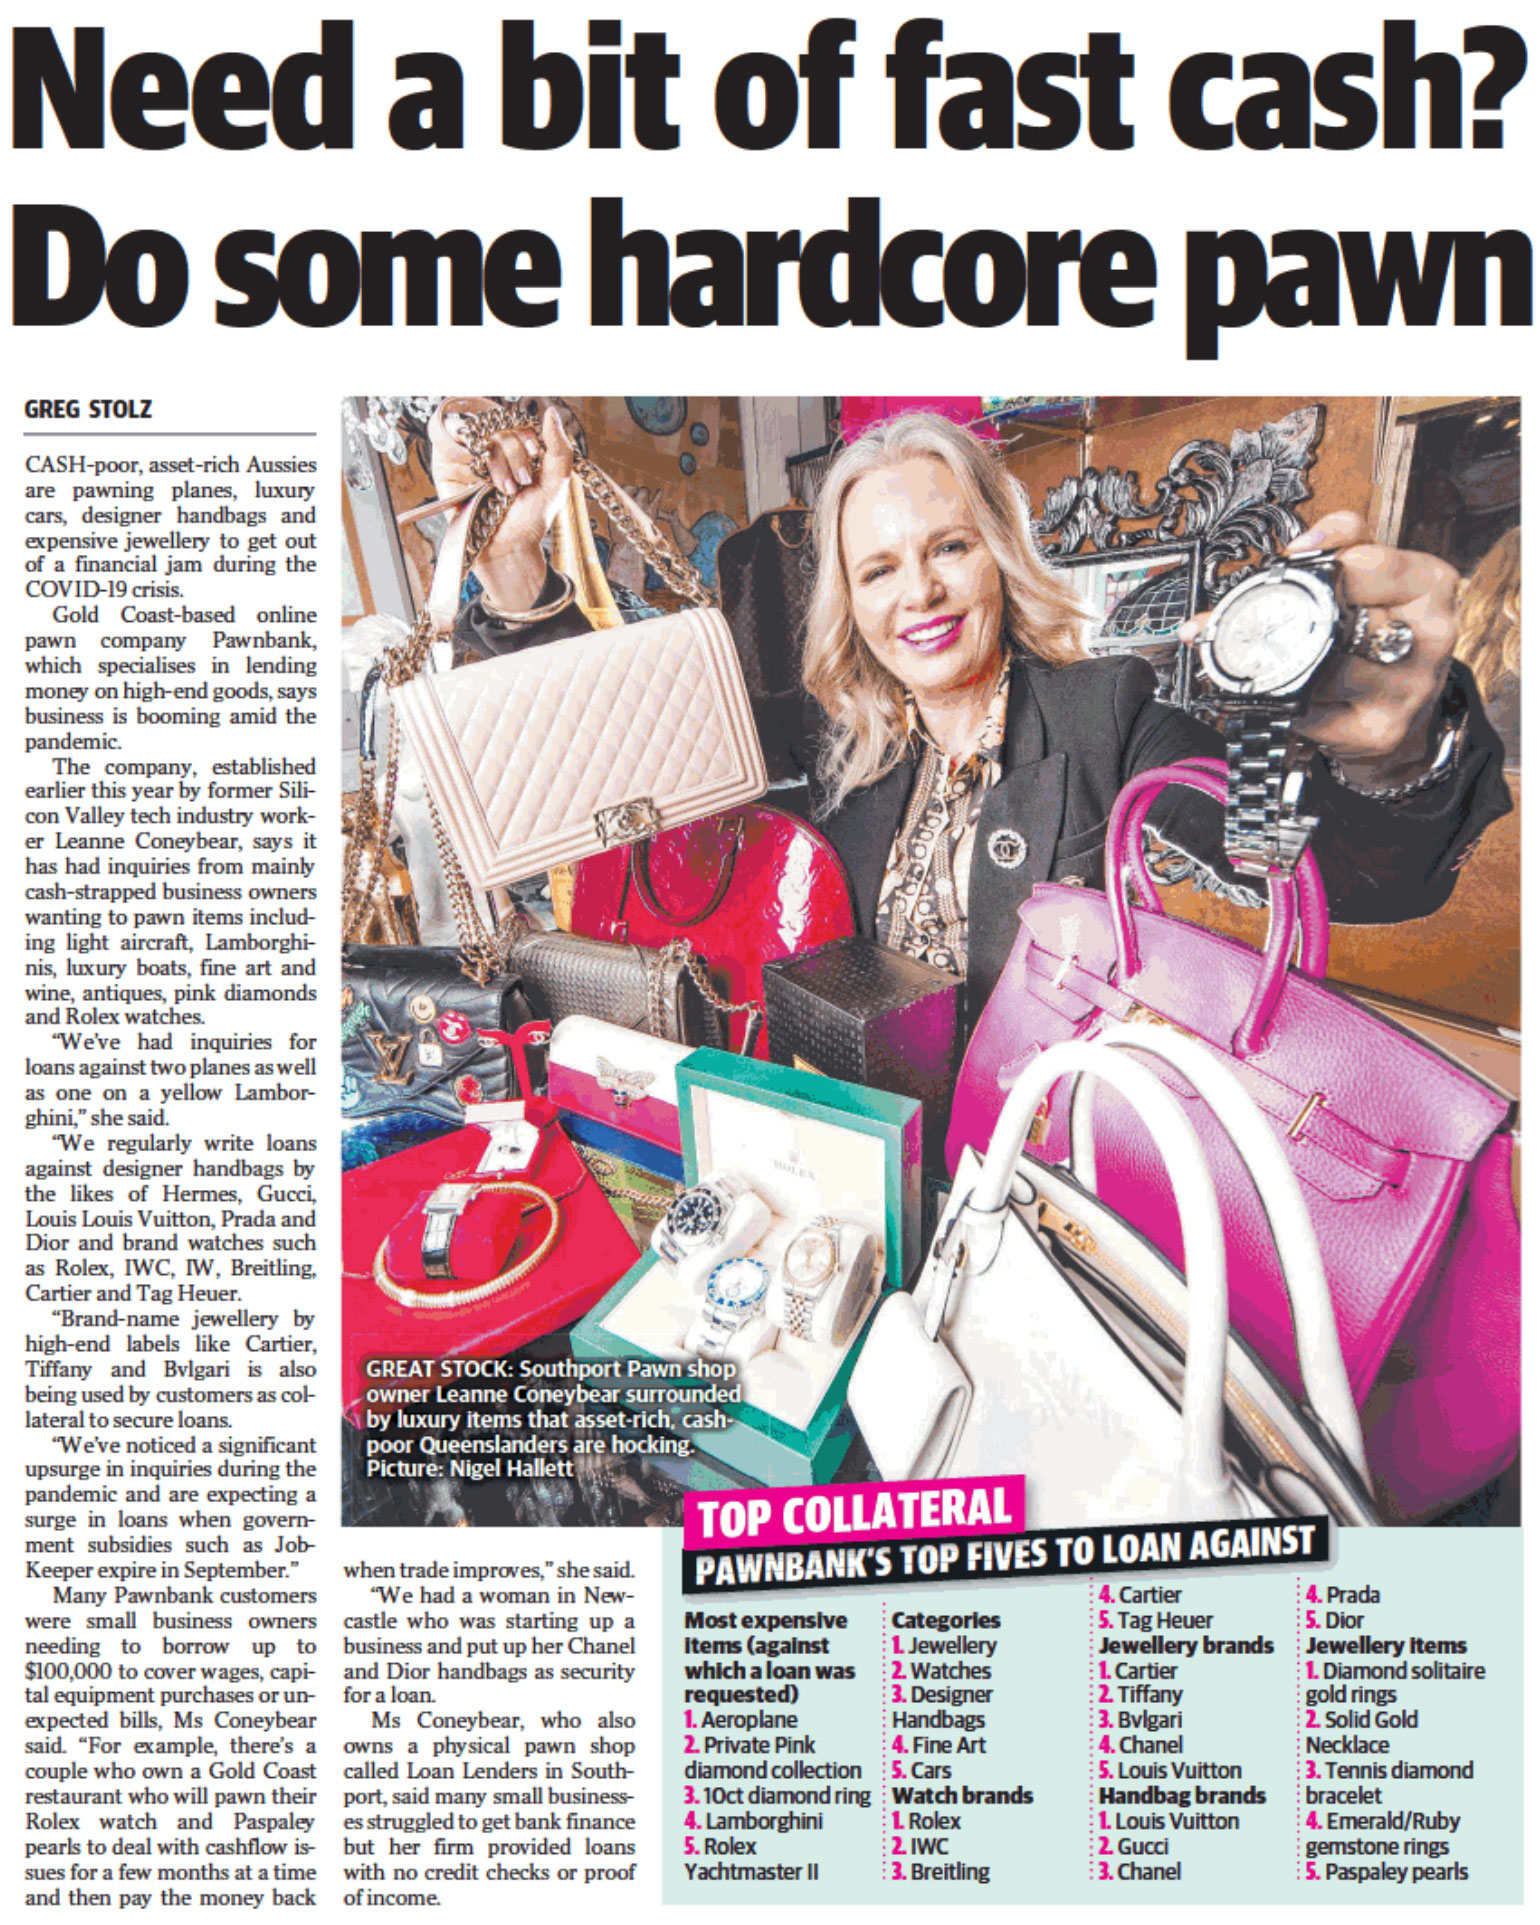 Article in the courier mail about Pledg entitled: 'Need a bit of fast cash? Do some hardcore pawn'.